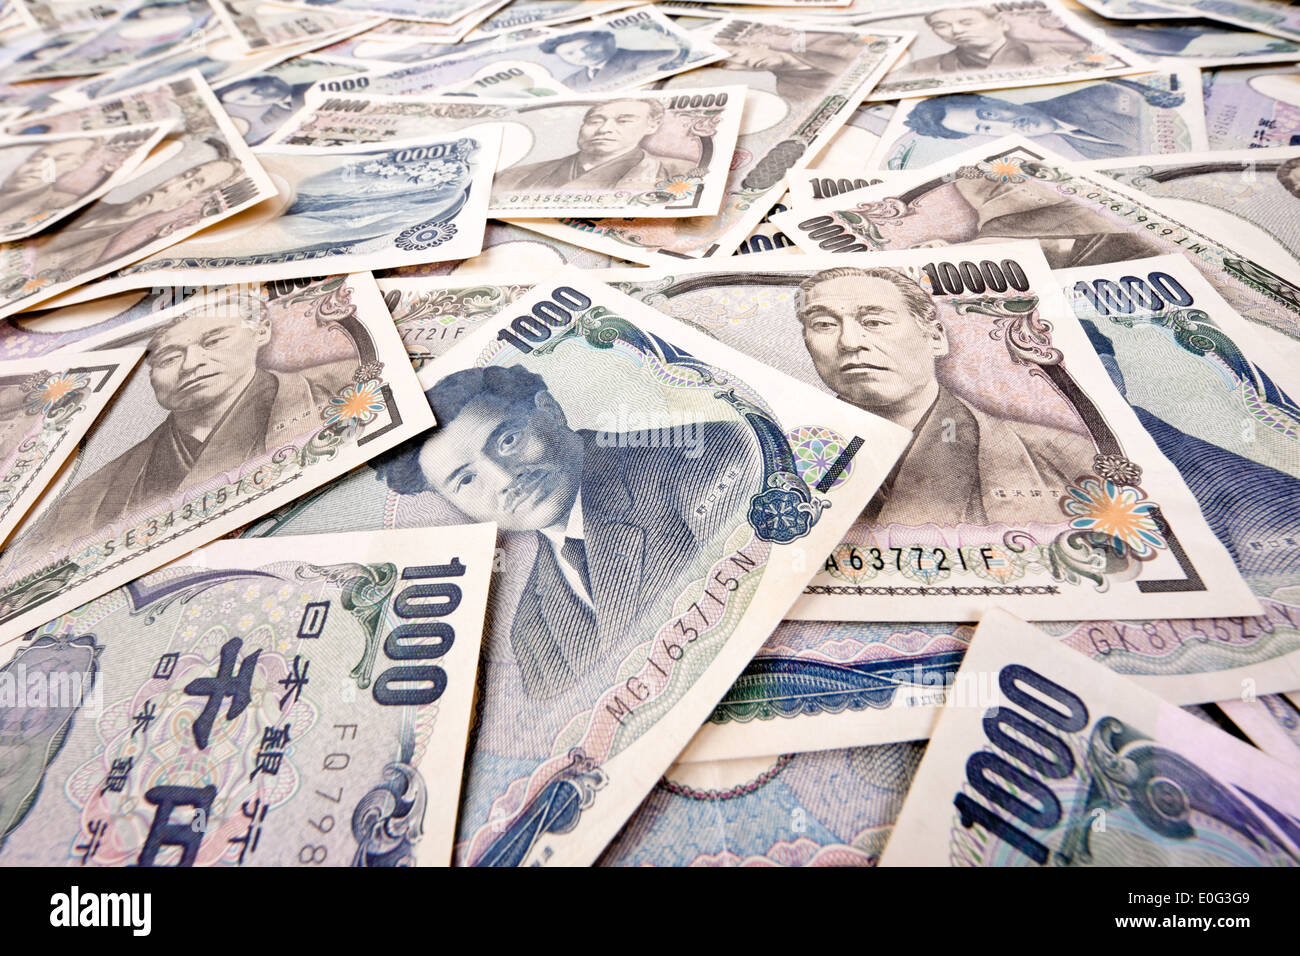 A Lot Of Japanese Money Notes The Yen Currency Viele